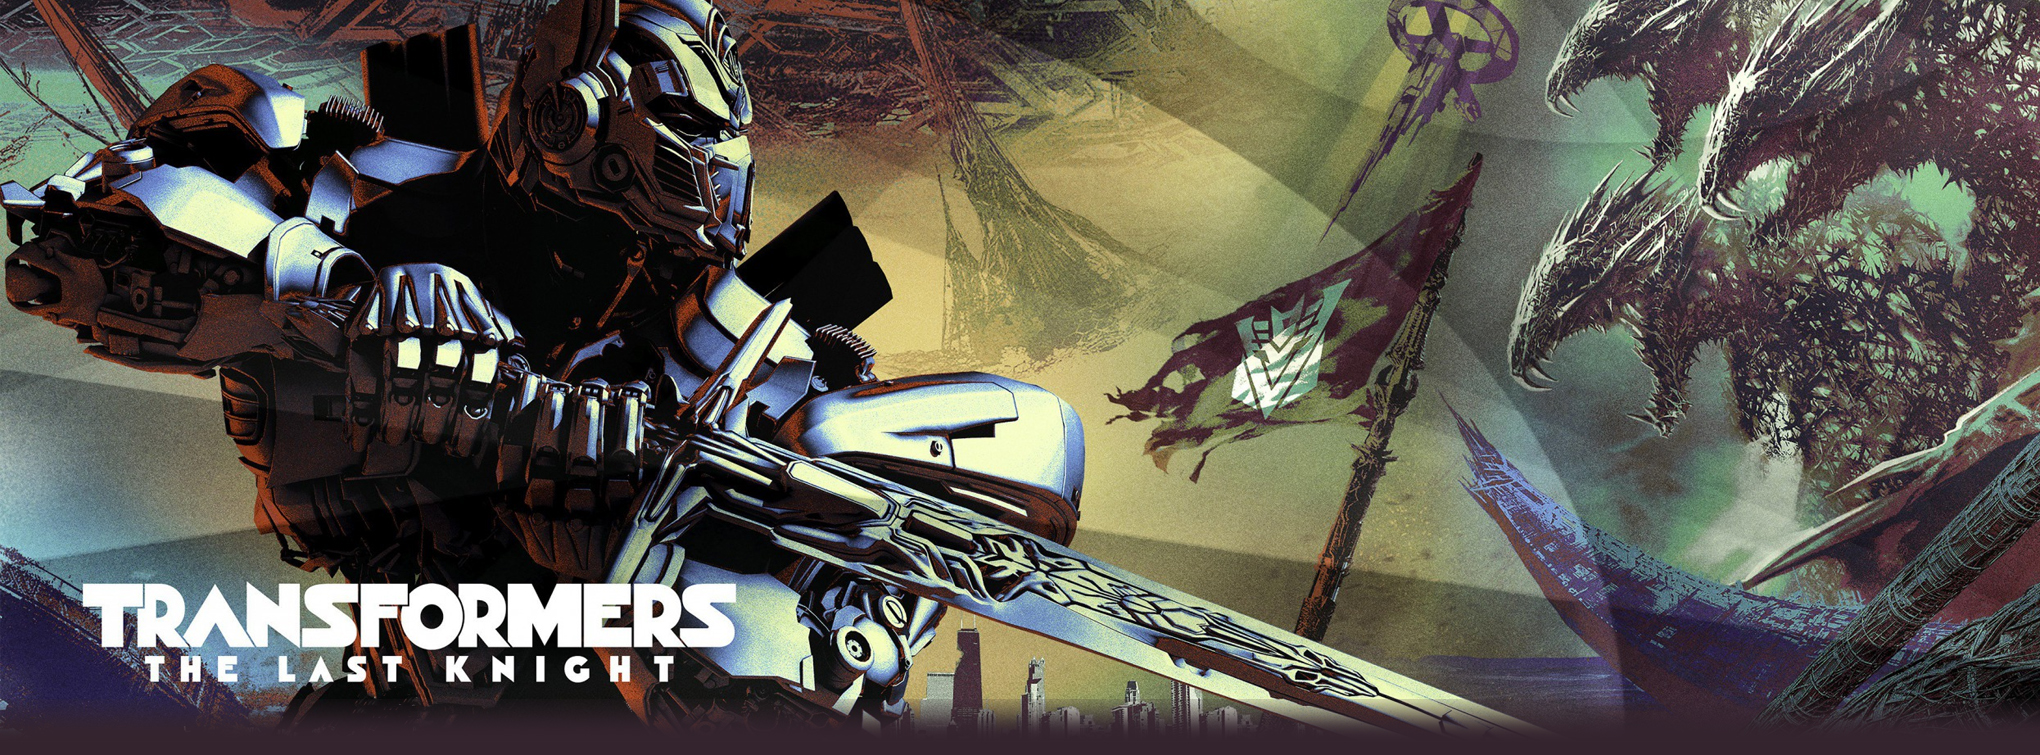 Transformers: The Last Knight - coming to select locations Wednesday, June 21 or Friday, June 23!